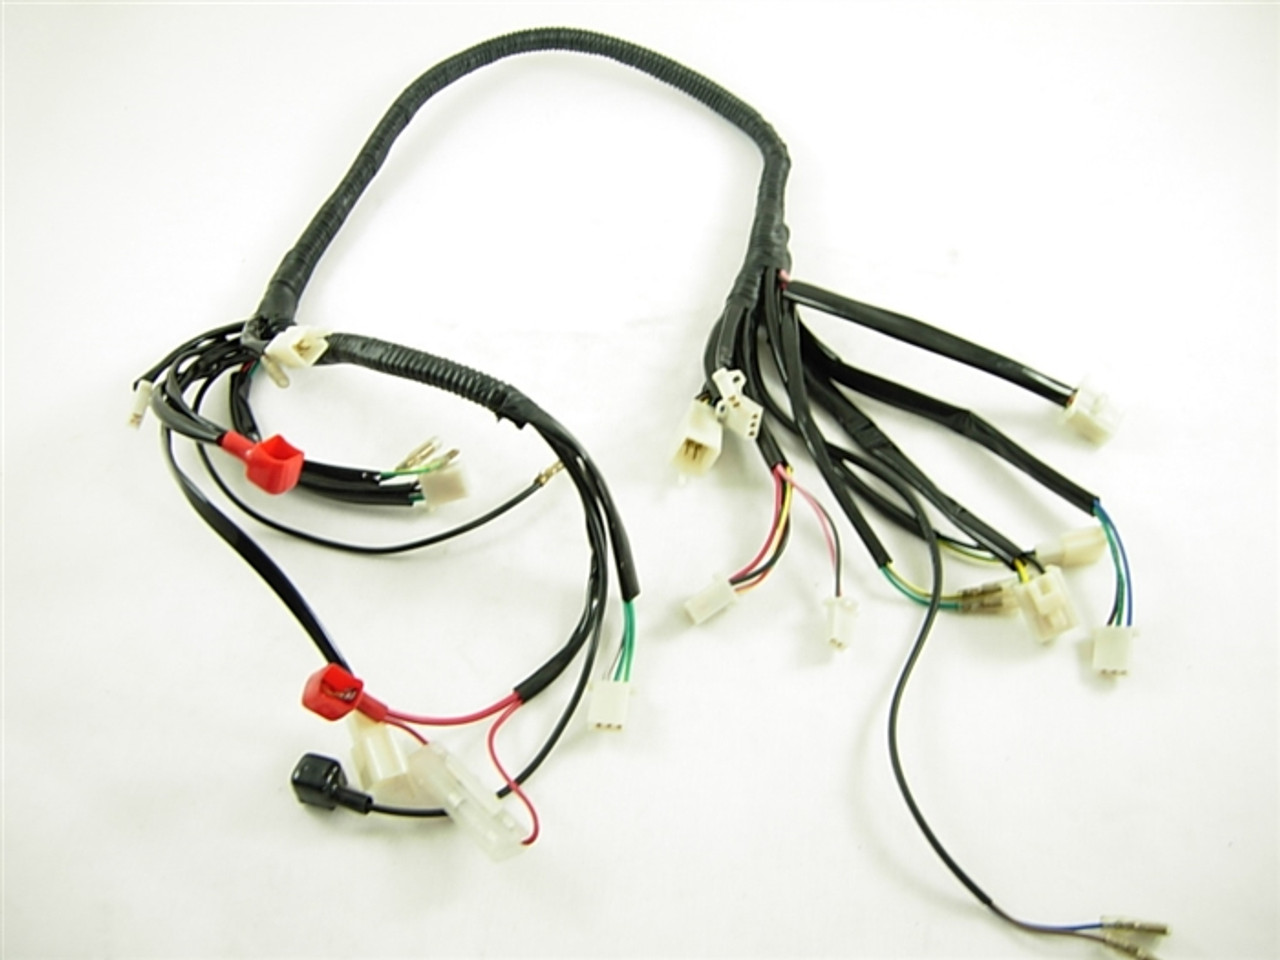 MAIN WIRE HARNESS 11627-A91-7